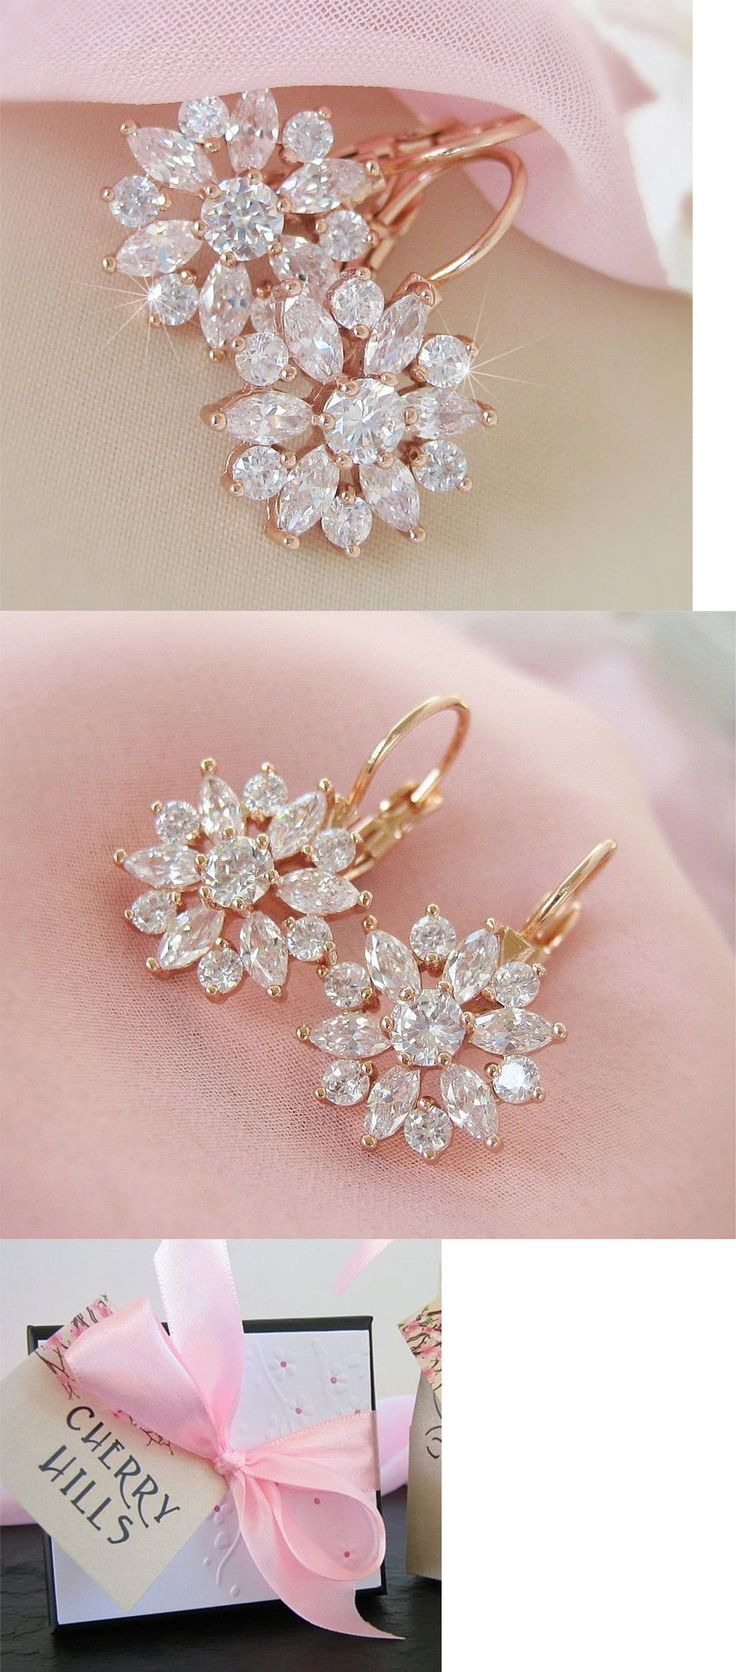 Bridal Jewelry 163552: Leverback Bridal Earrings Rose Gold Cubic Zirconia Flower *Boutique Quality* -> BUY IT NOW ONLY: $30 on eBay!